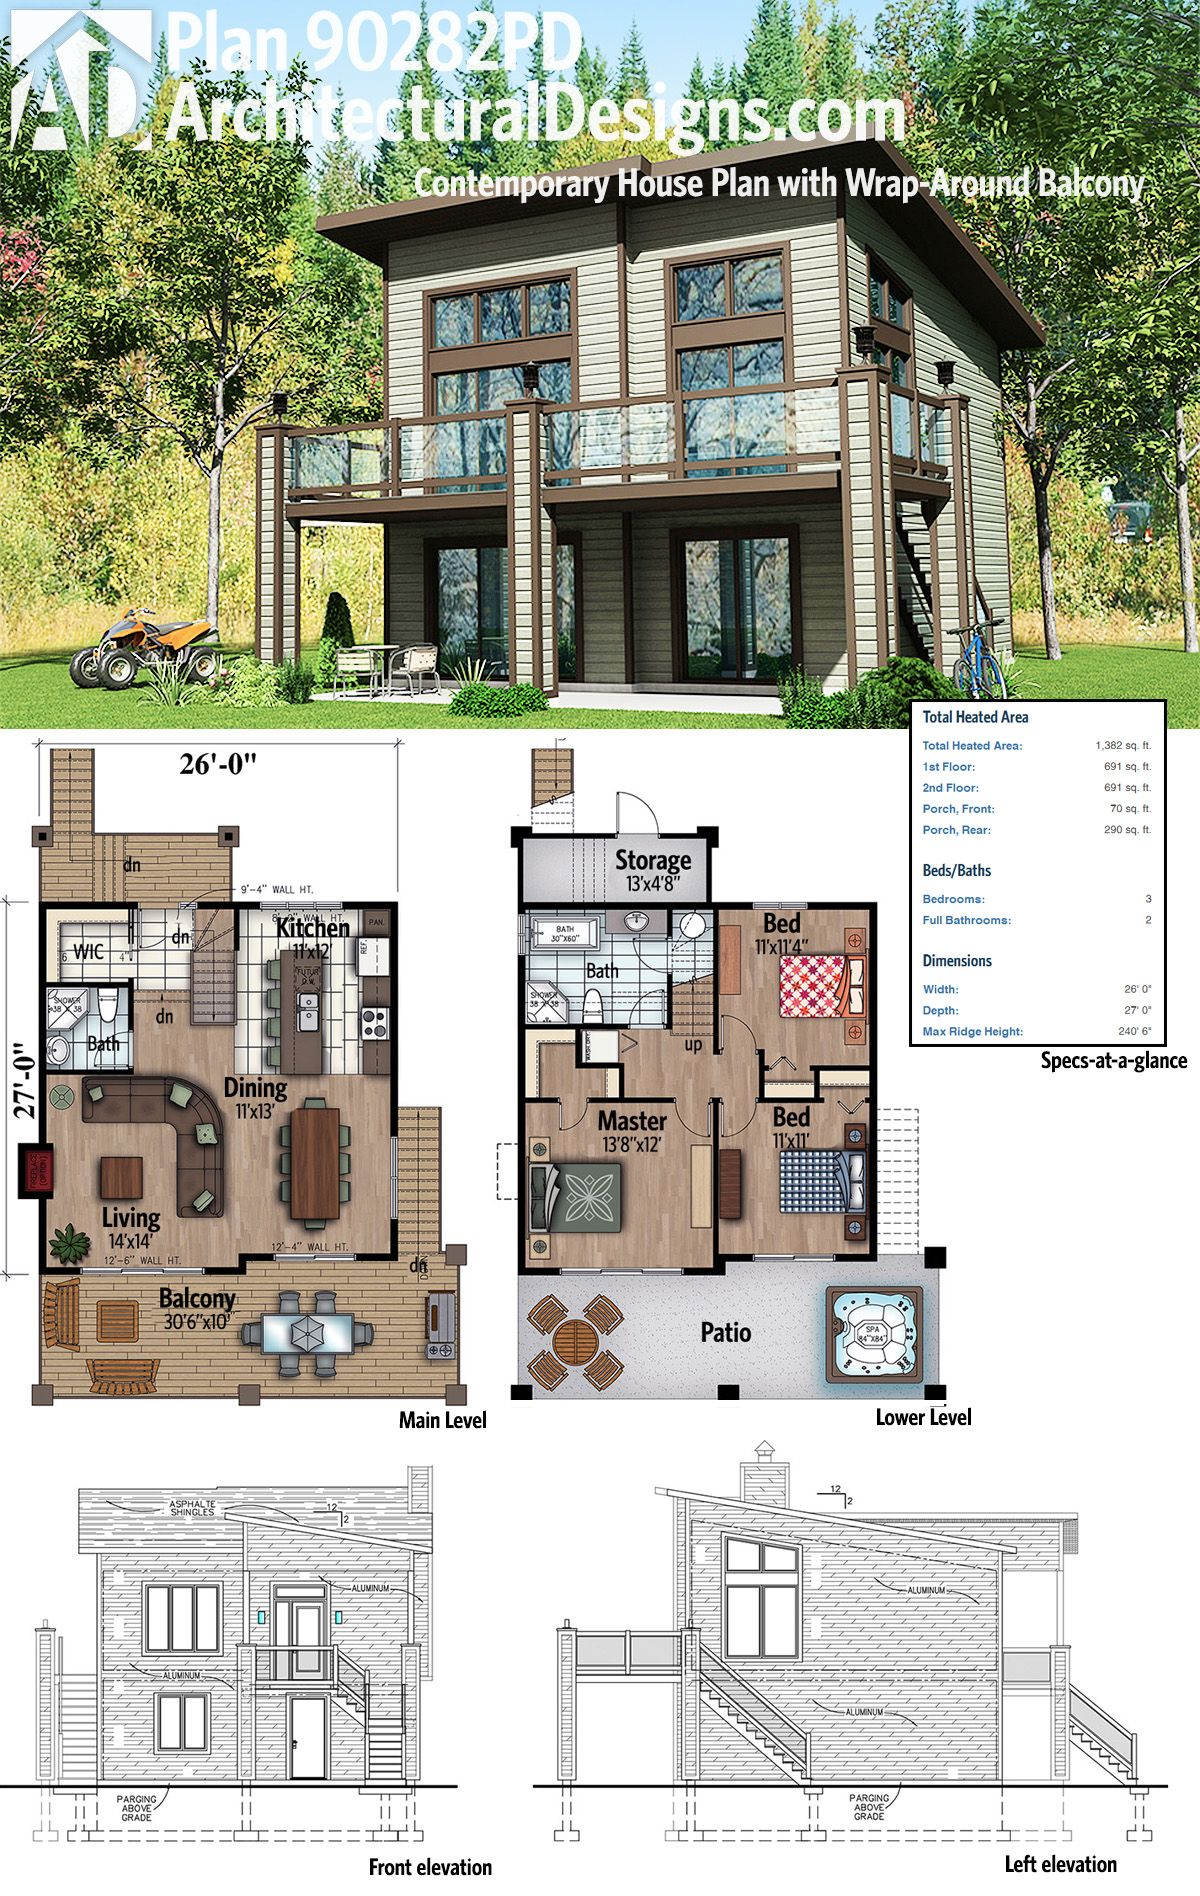 Plan 90282pd Contemporary House Plan With Wrap Around Balcony Contemporary House Plans Contemporary House House Plans